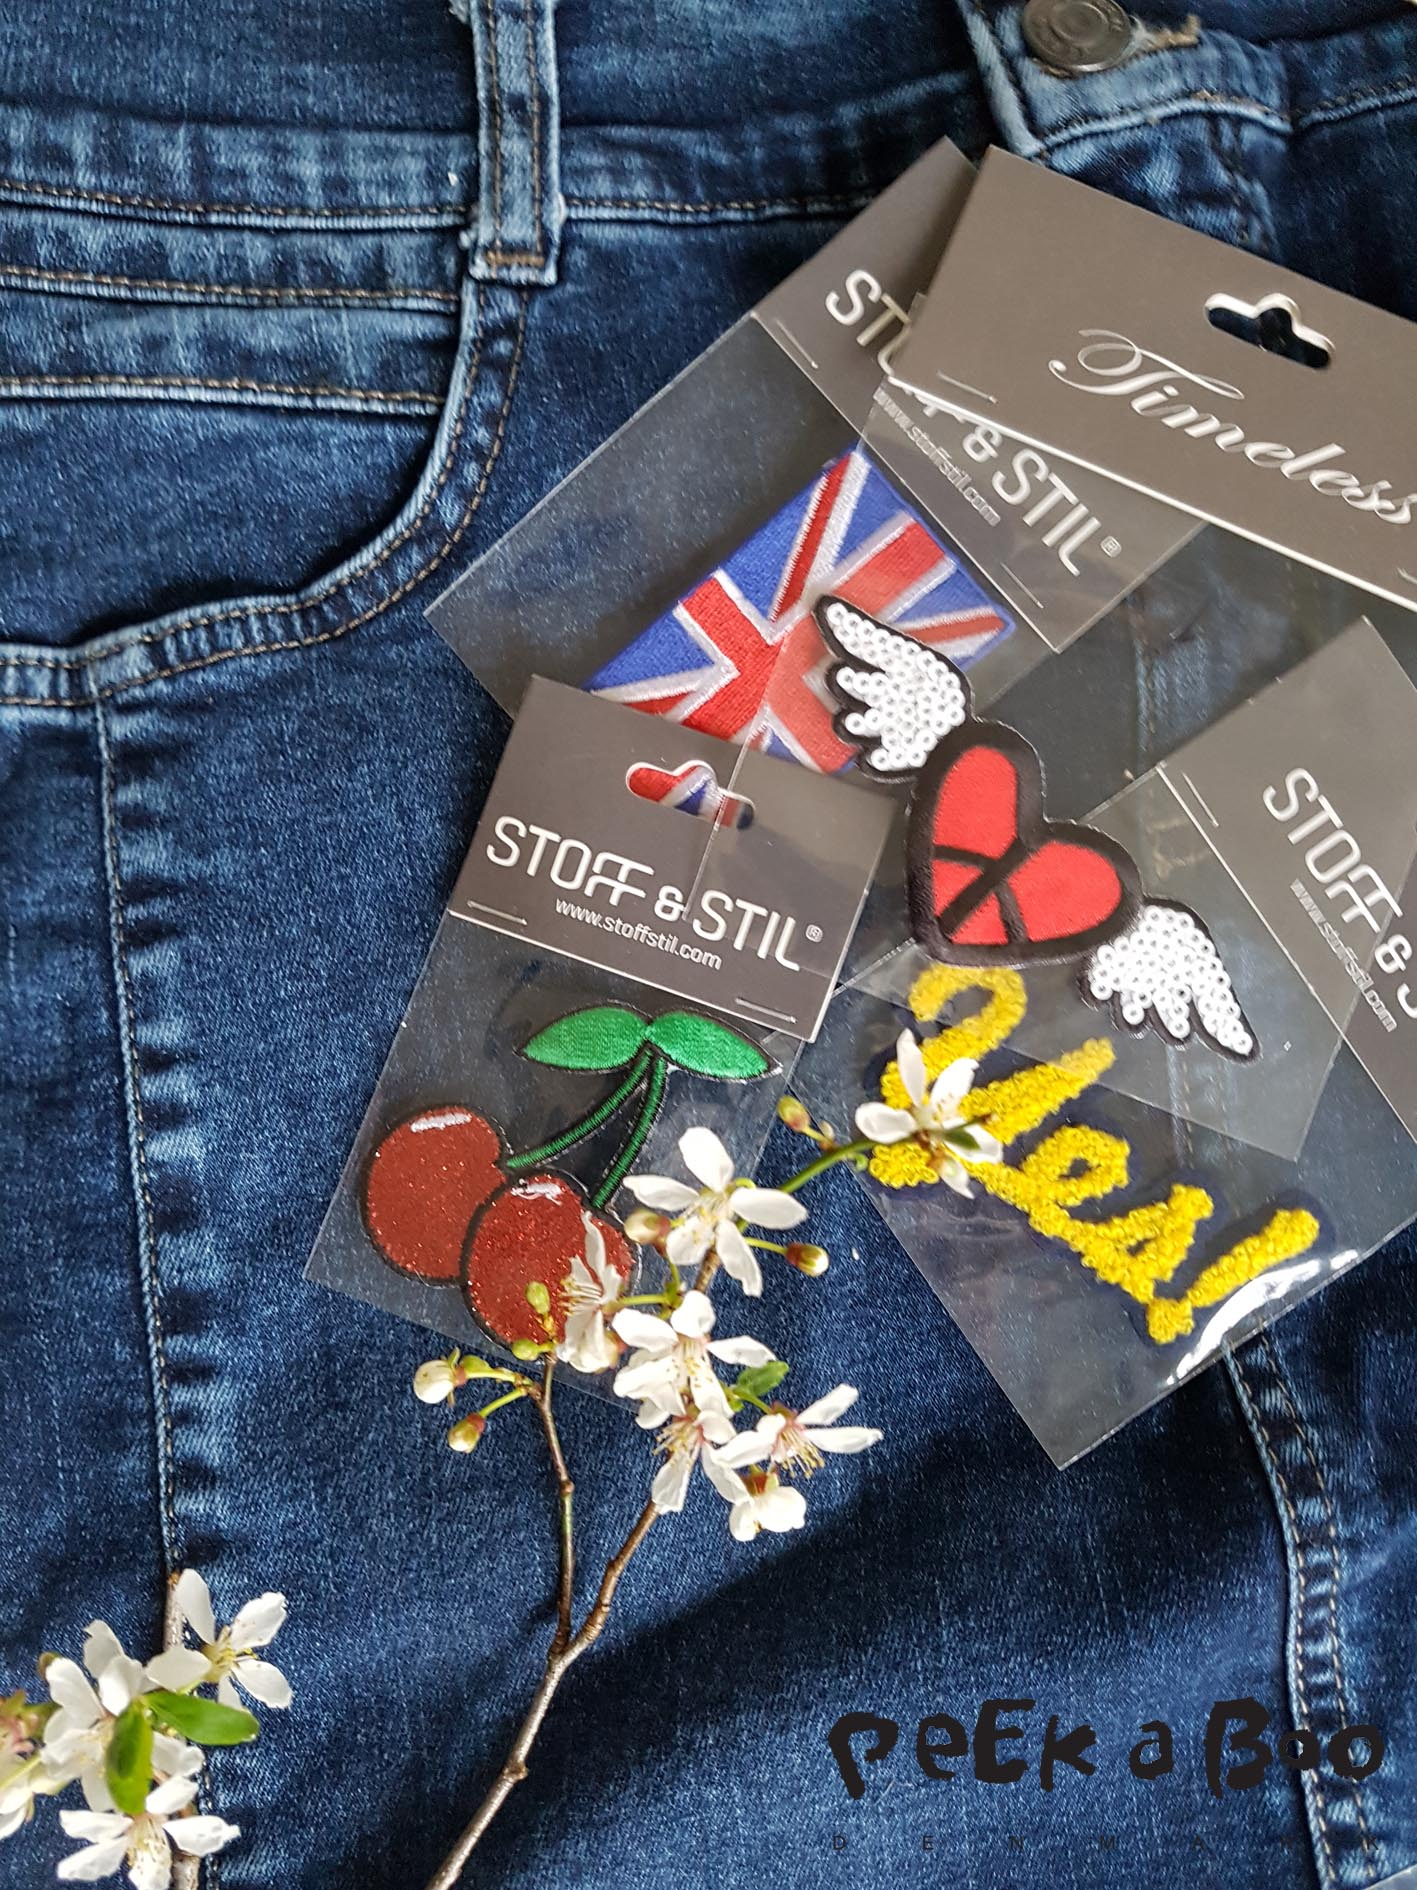 denim from Bessie and iron-on badges from Stoff & Stil.